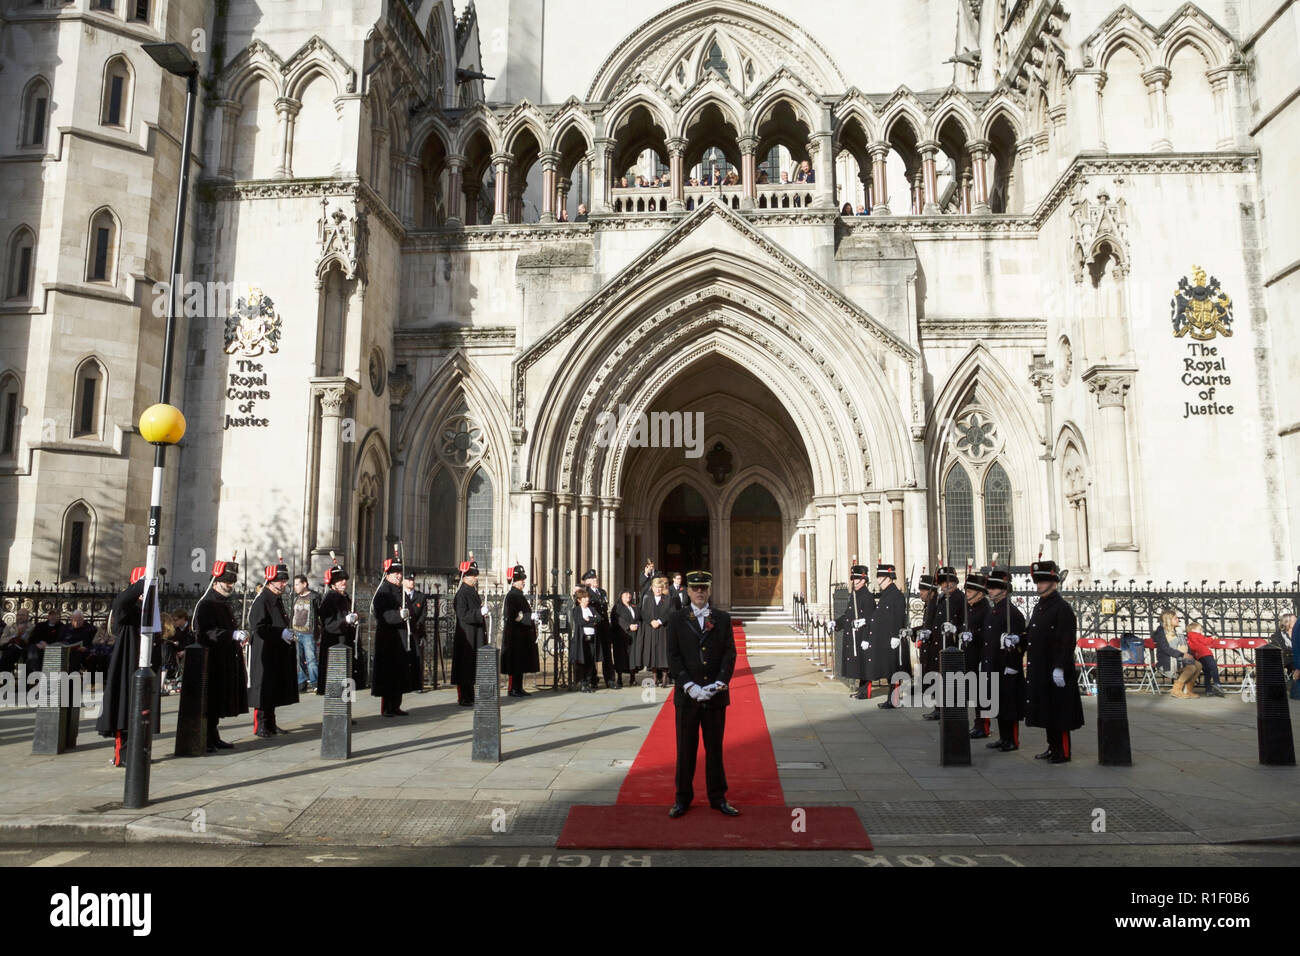 The Royal Courts of Justice London. With the Honourable Artillery Company (HAC) outside, awaiting arrival of the Lord Mayor. - Stock Image